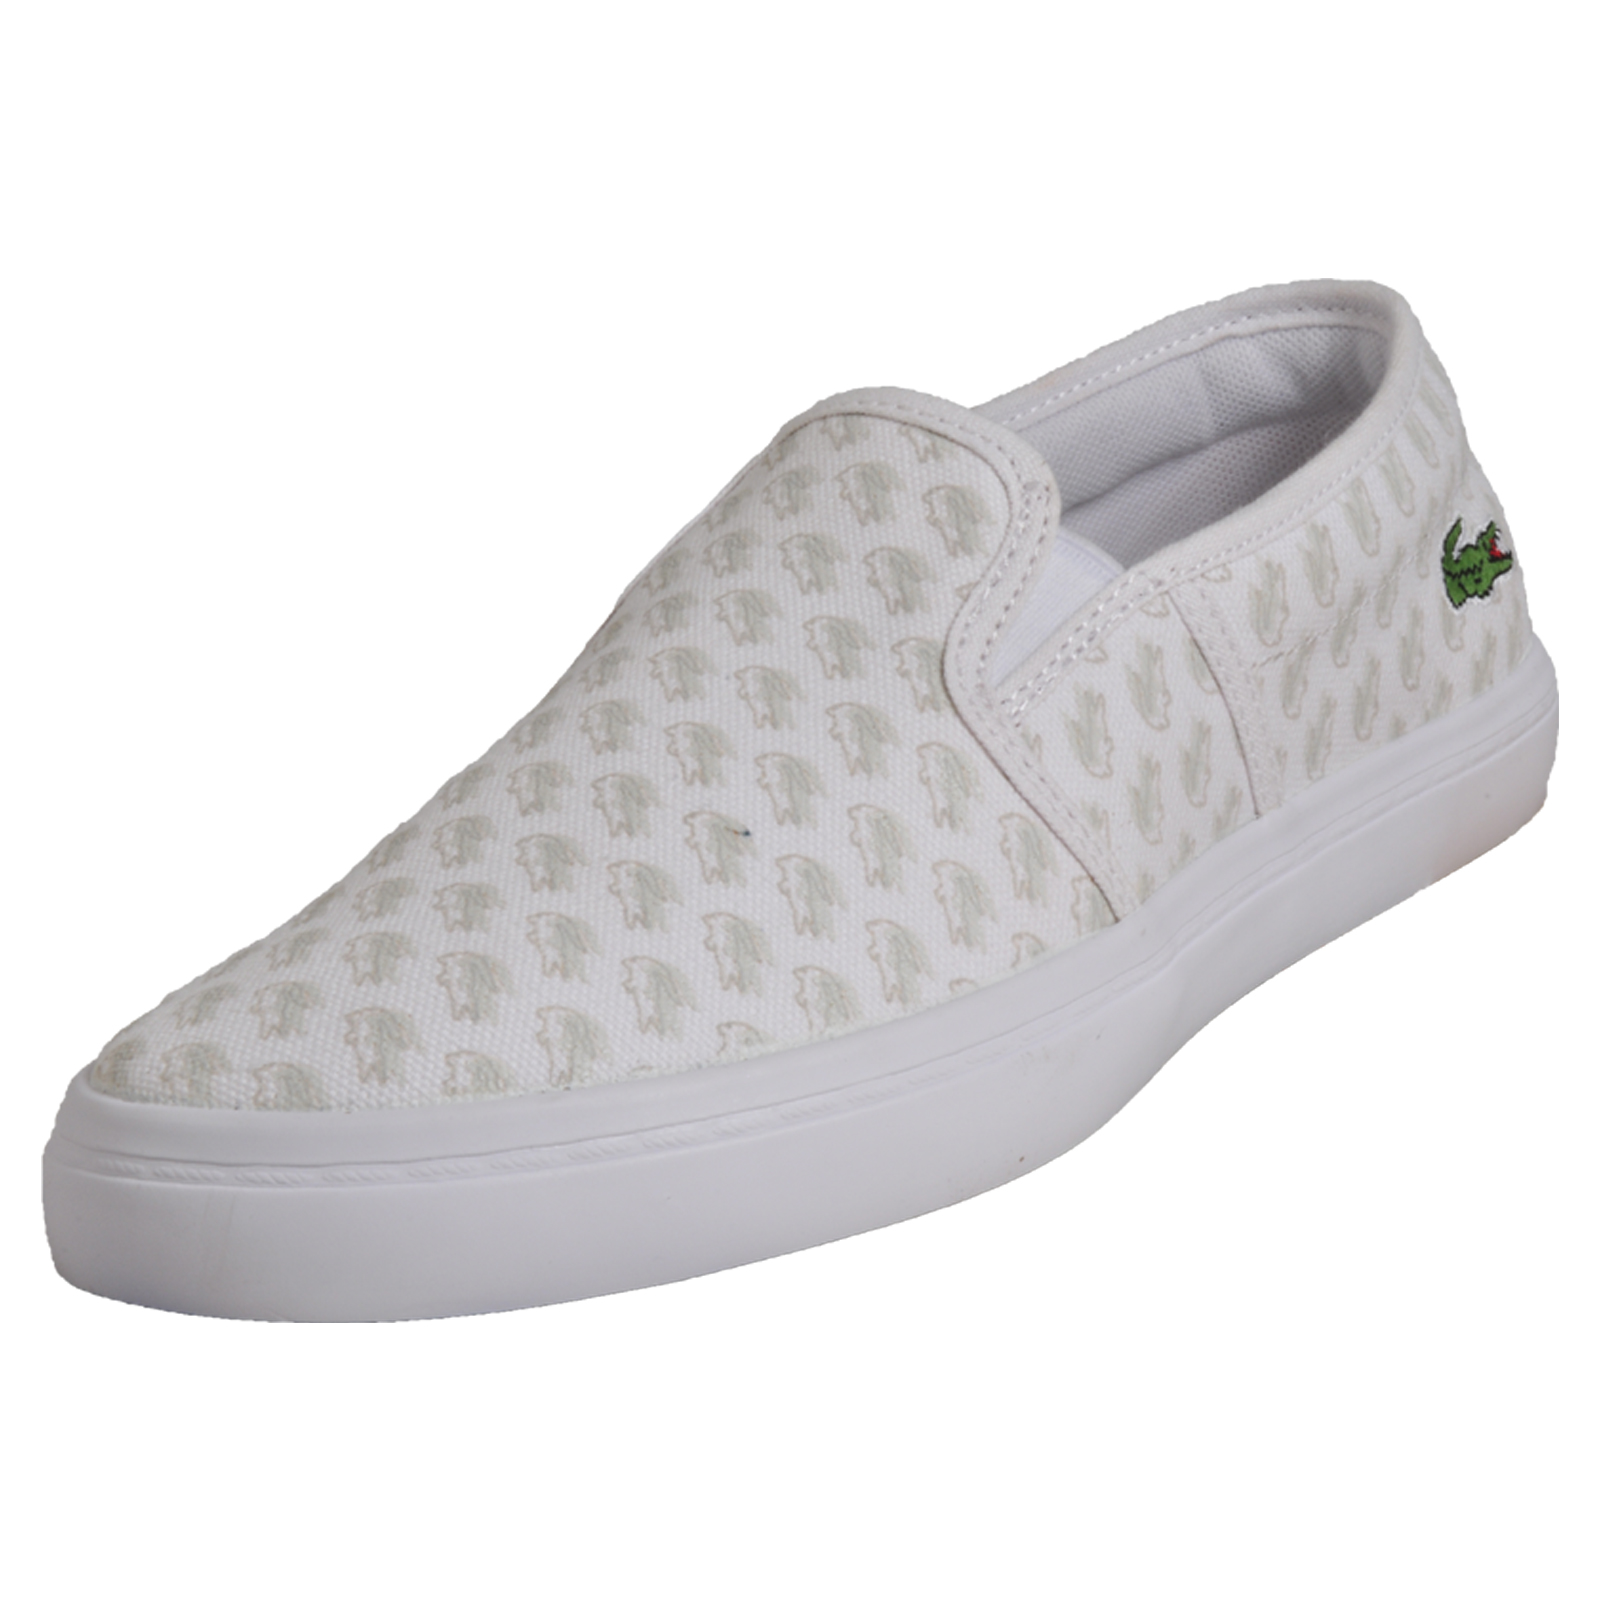 837eb9524 Details about Lacoste Gazon Women s Slip-On Casual Designer Plimsol Trainers  White B Grade